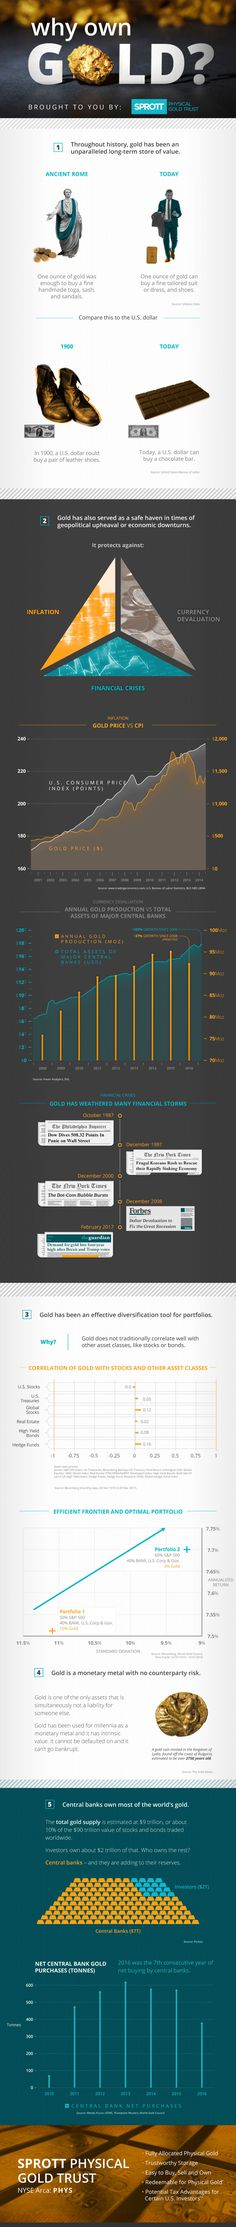 Infographic: Why Buy Gold by Sprott Physical Gold Trust